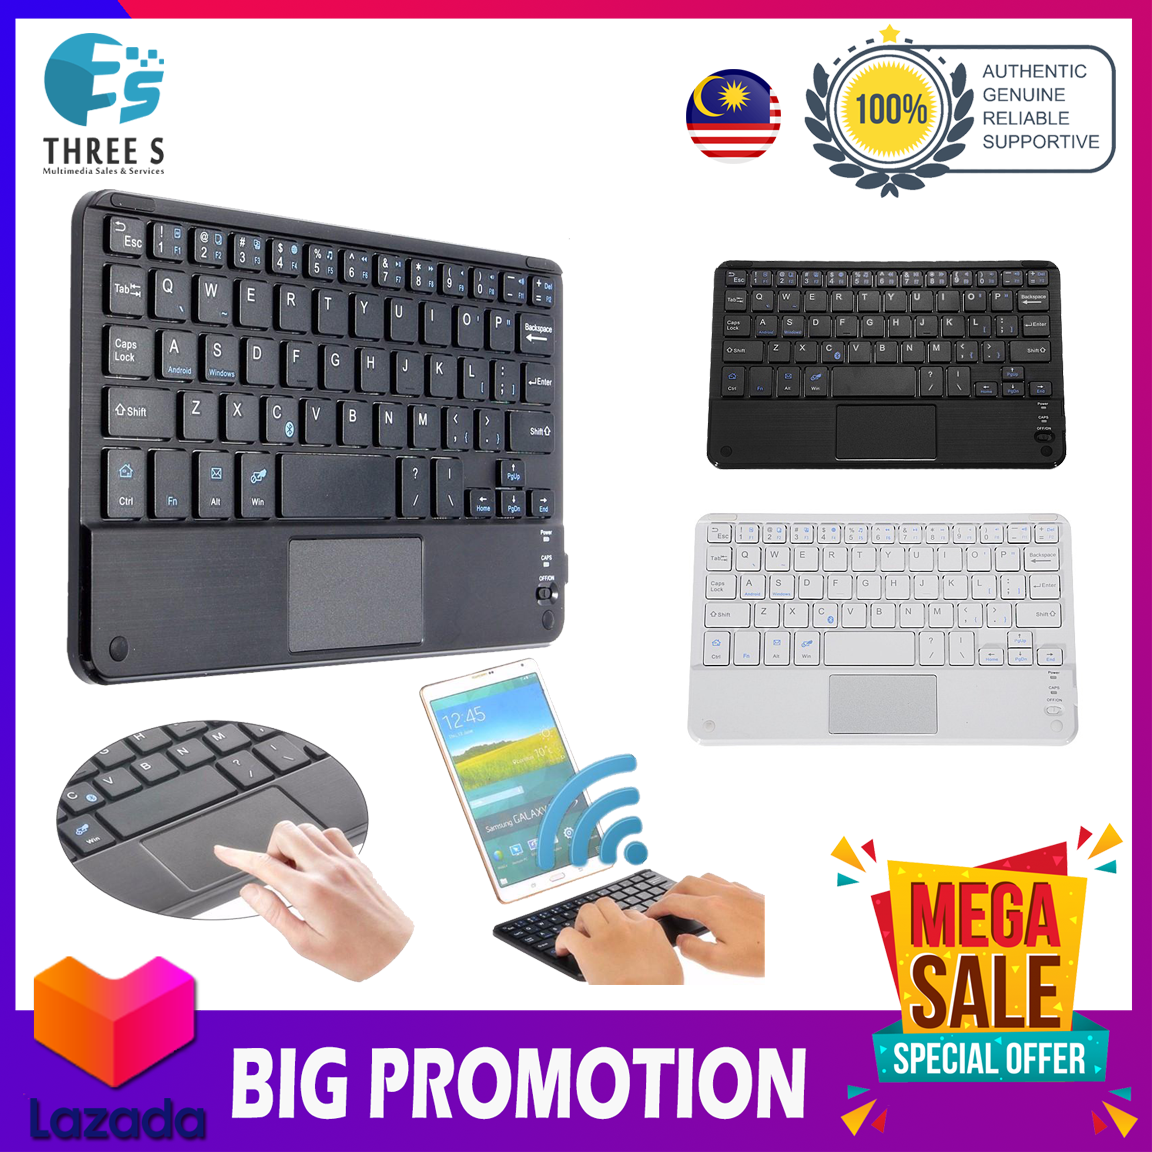 Mini Wireless Bluetooth Keyboard With Touchpad For Android and Windows Devices